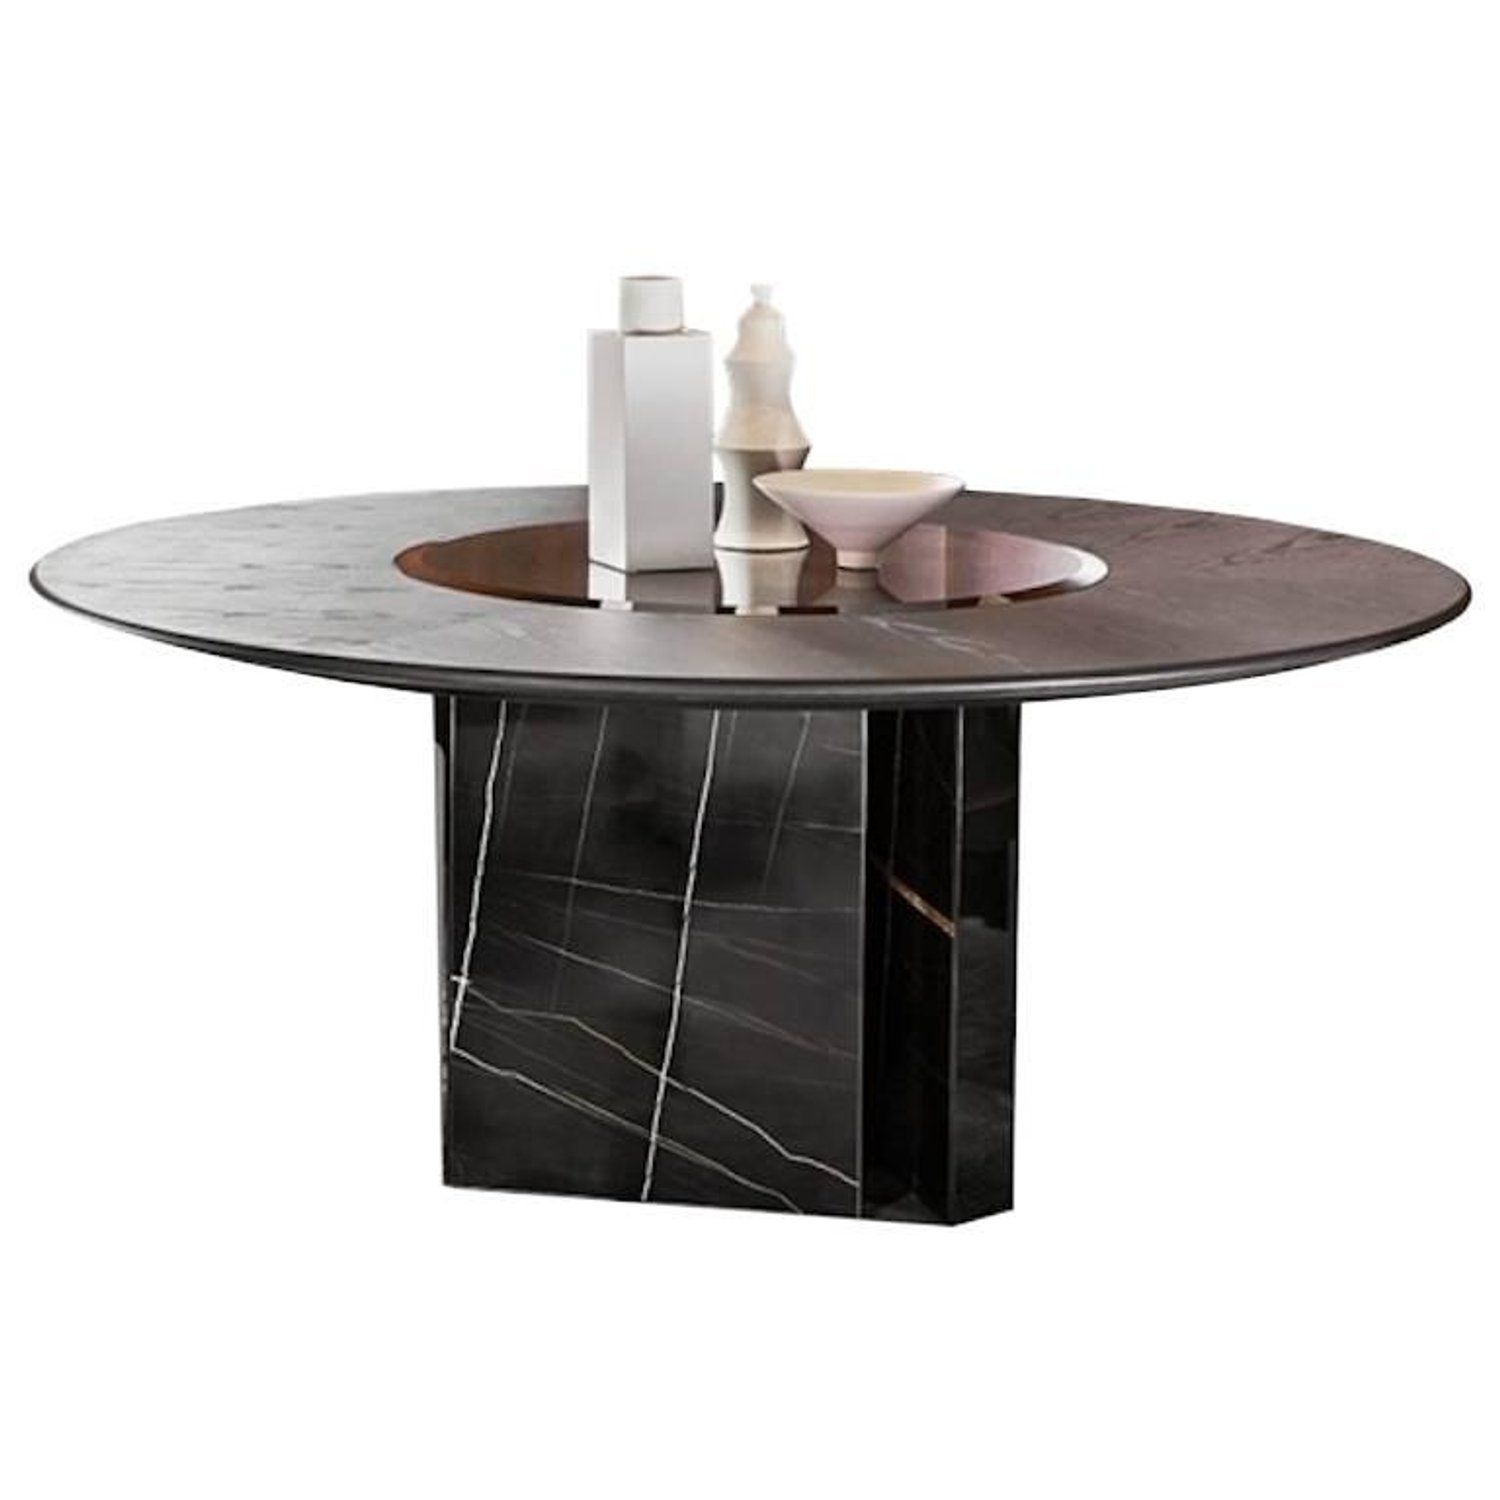 Gallotti Radice Platium W Round Table In Marble Wood Glass